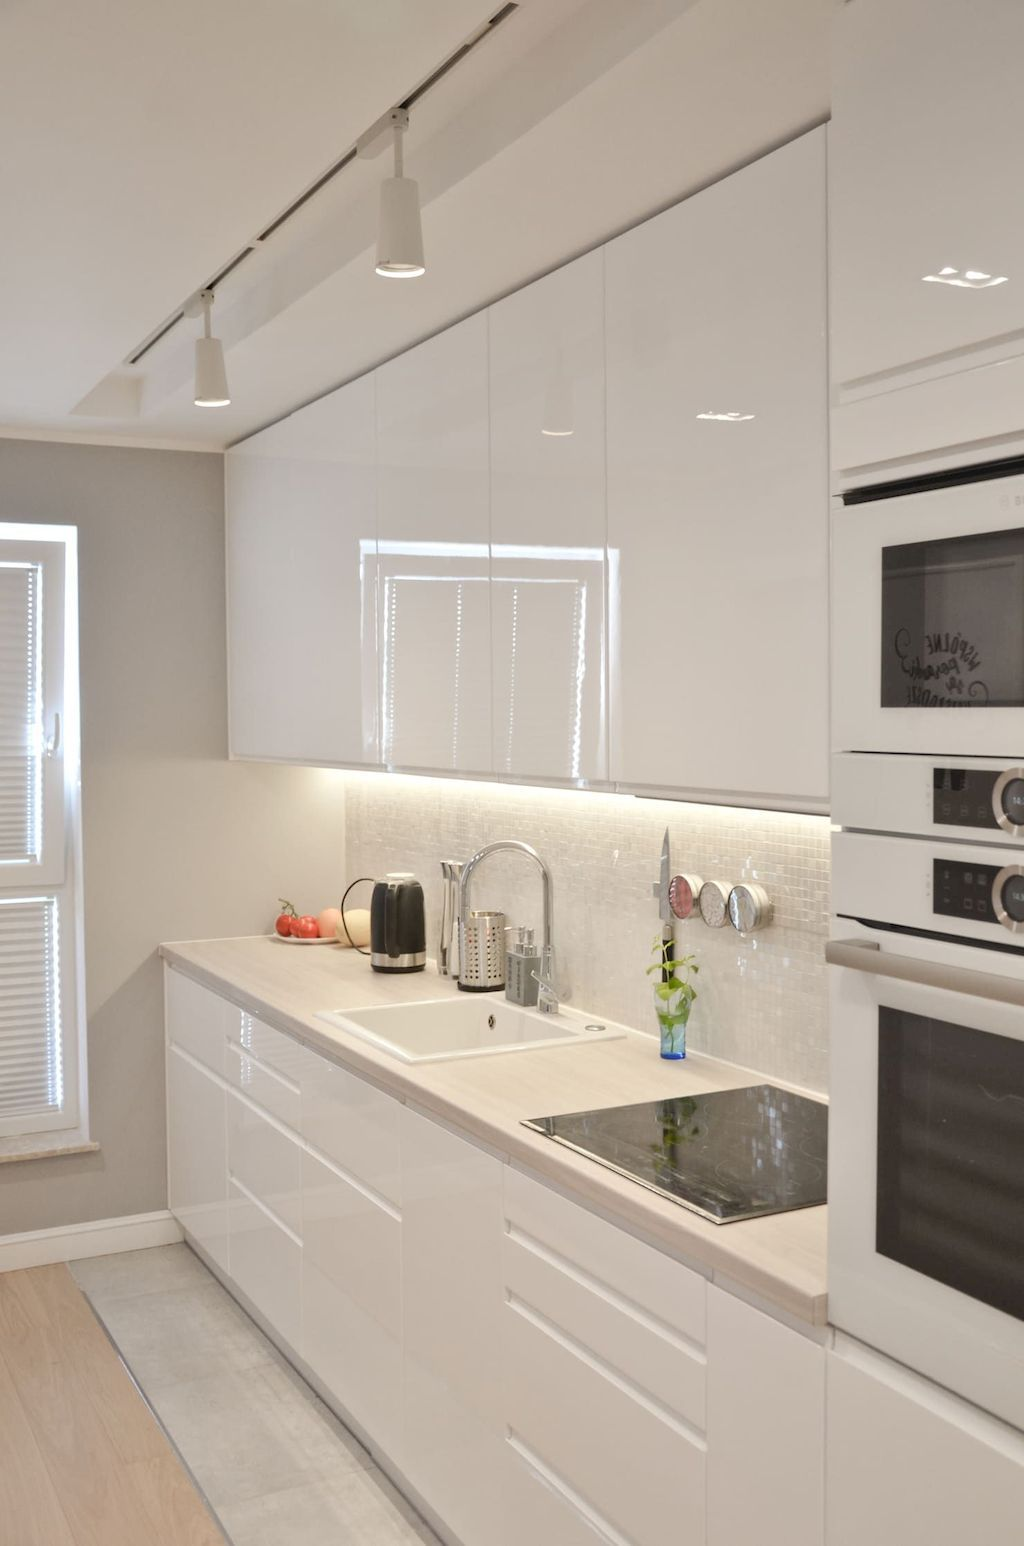 80 Stunning White Kitchen Cabinet Makeover Ideas - Homekover